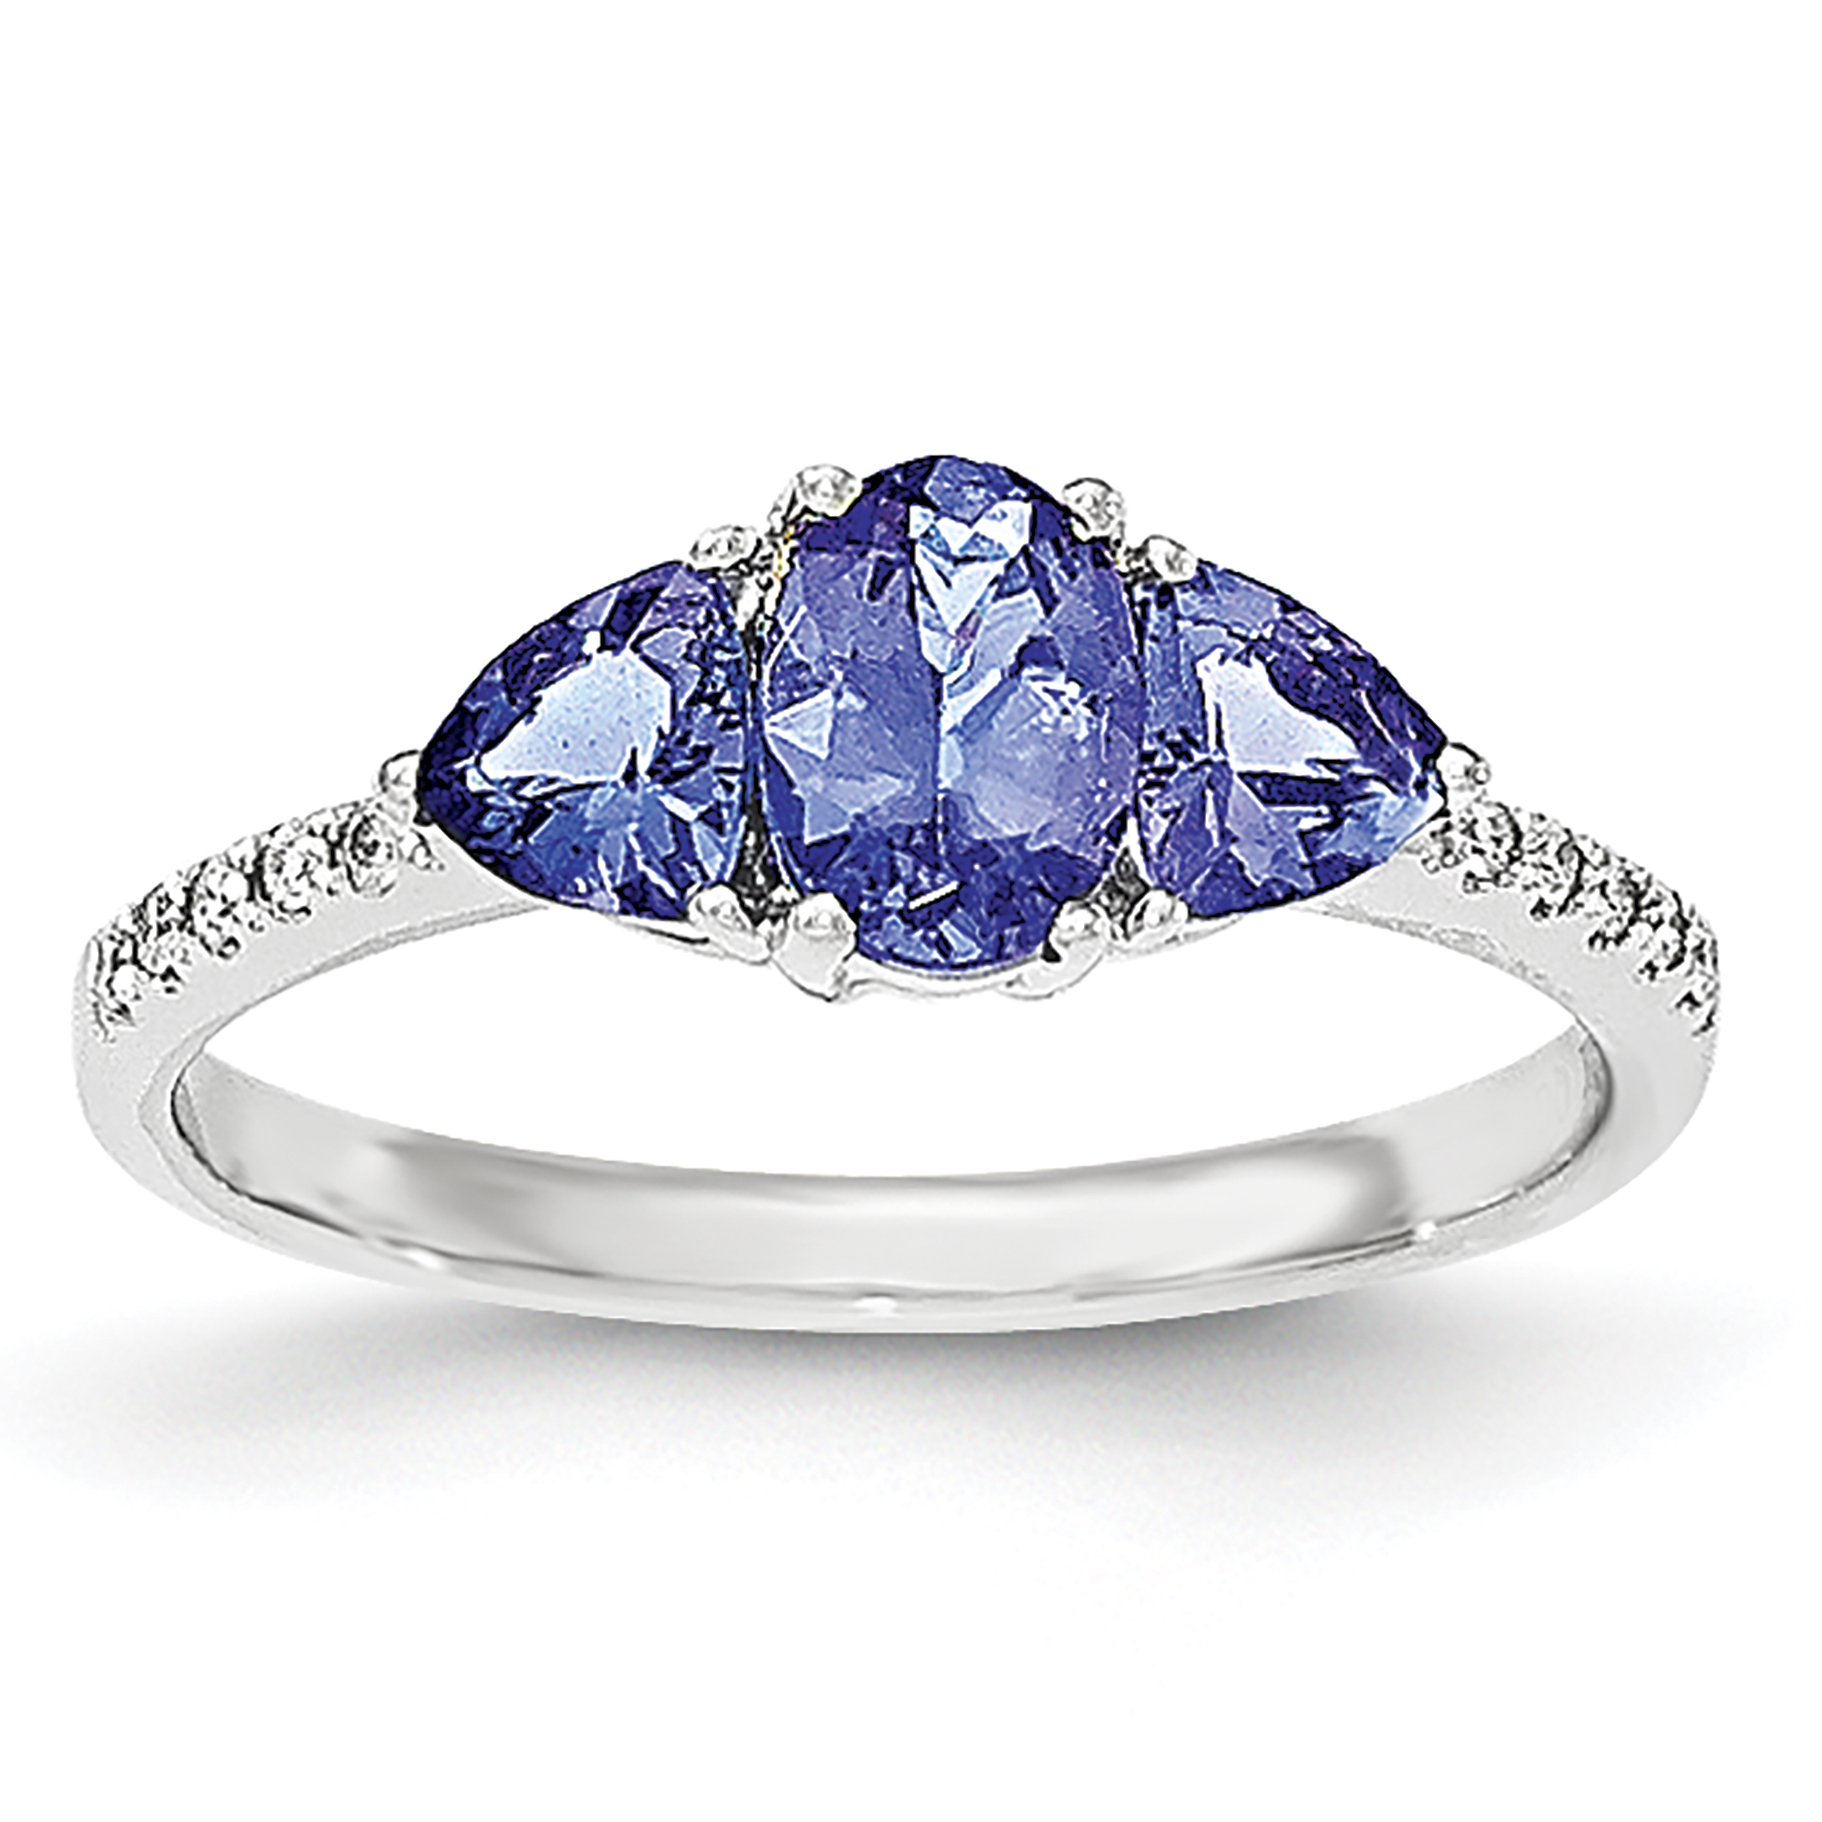 14k White Gold Oval/Trillion Tanzanite & Diamond Ring